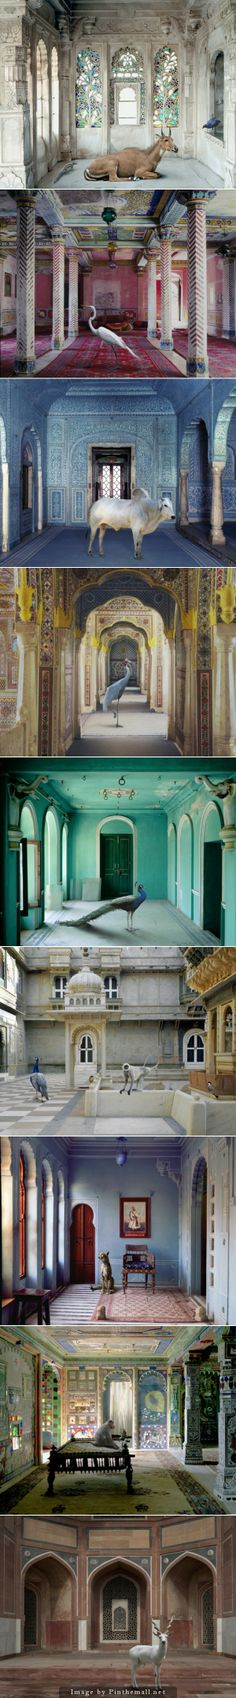 After a life-changing journey to Rajasthan in 2008, artist Karen Knorr wanted to celebrate the visual richness found in the fables, myths and stories of northern India using sacred and secular sites to highlight the caste system, femininity and its relationship with the animal world. Interiors of palaces, mausoleums, and holy sites were photographed with a large format camera and a variety of animals were photographed separately in sanctuaries and zoos.